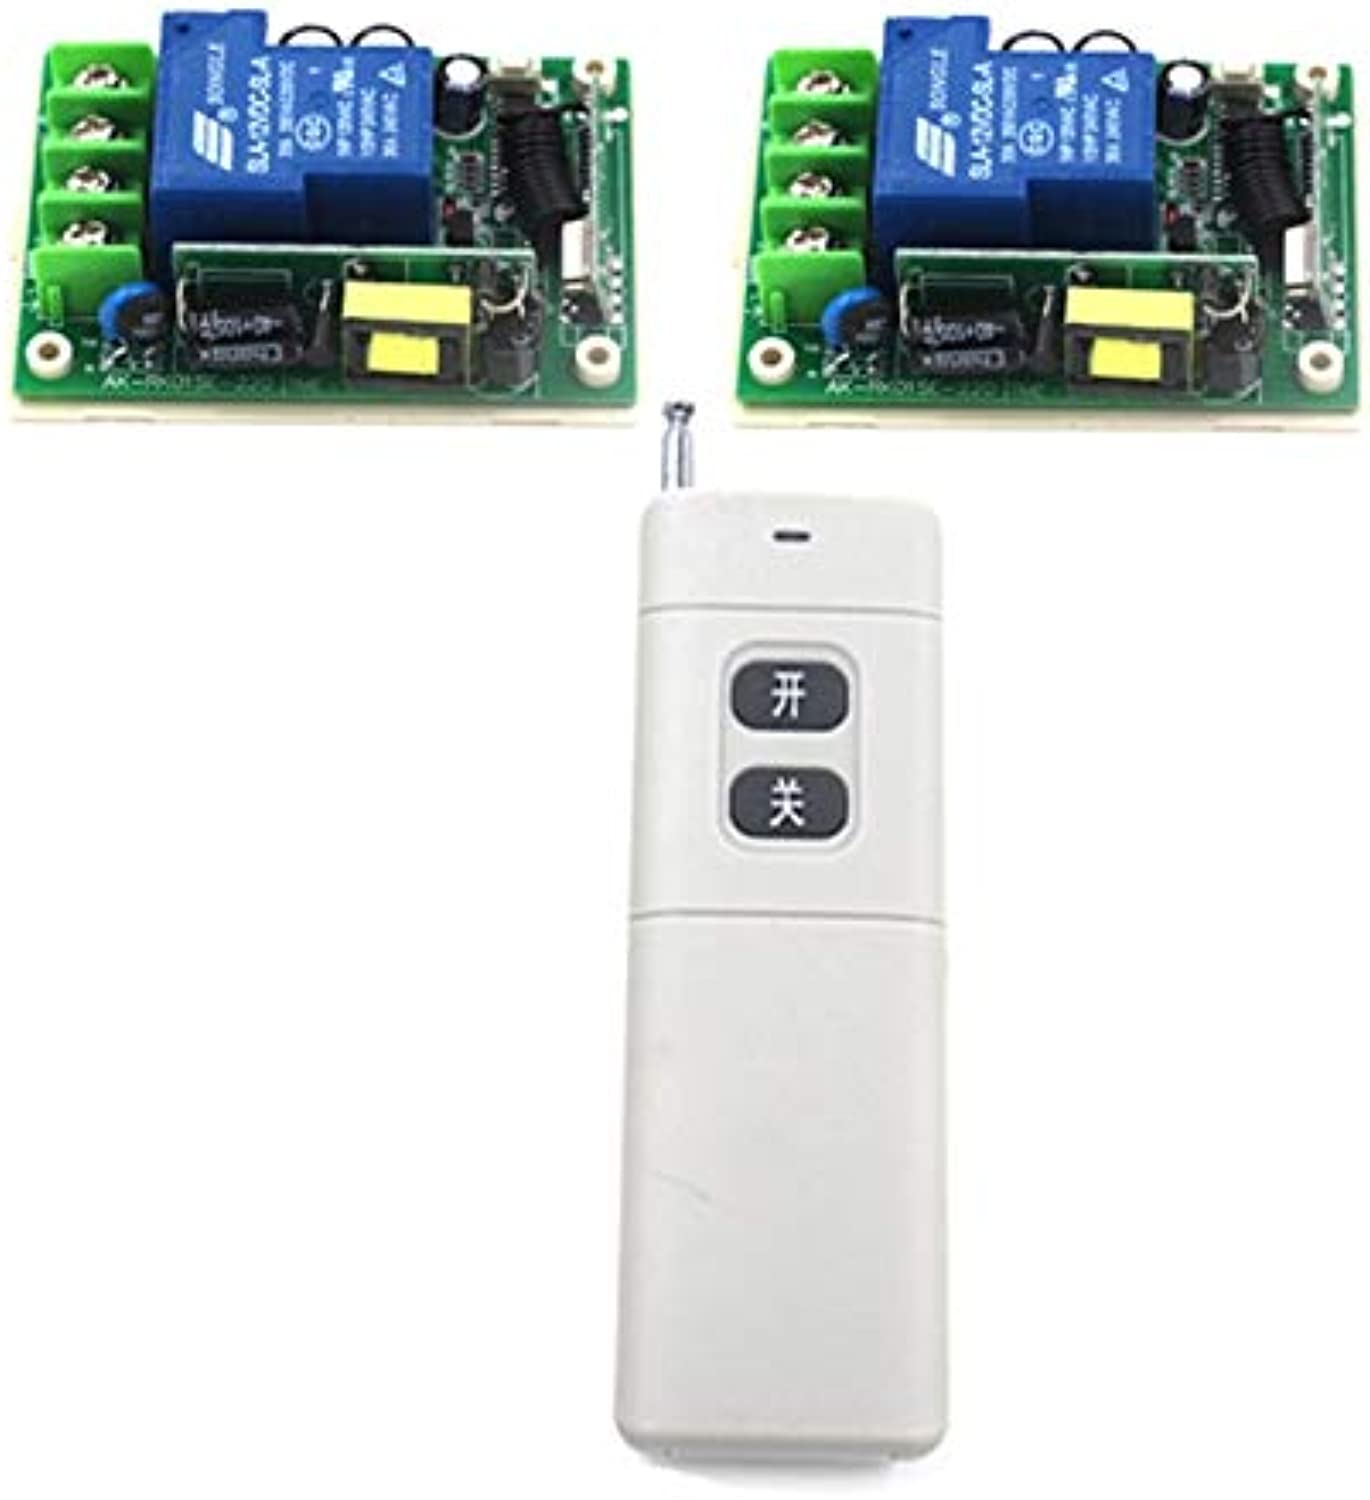 Luxury Remote Switch 85V250V Wireless Remote Control Light Switch 30A 2 Receiver + 1 Transmitter 4136